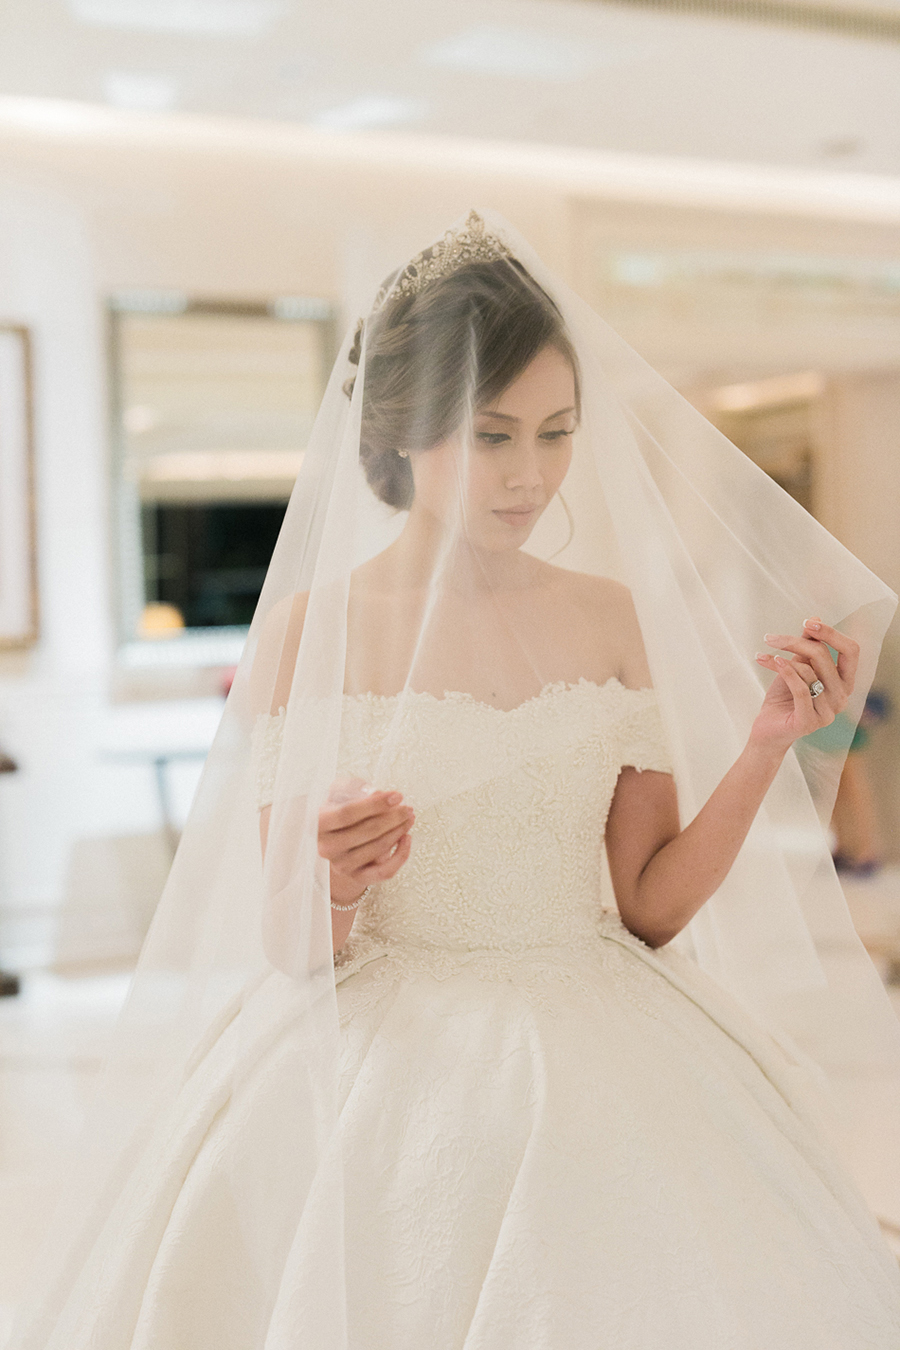 Chen_Sands_Photo_Destination_Wedding_Photographer_StRegis_Singapore-4.jpg